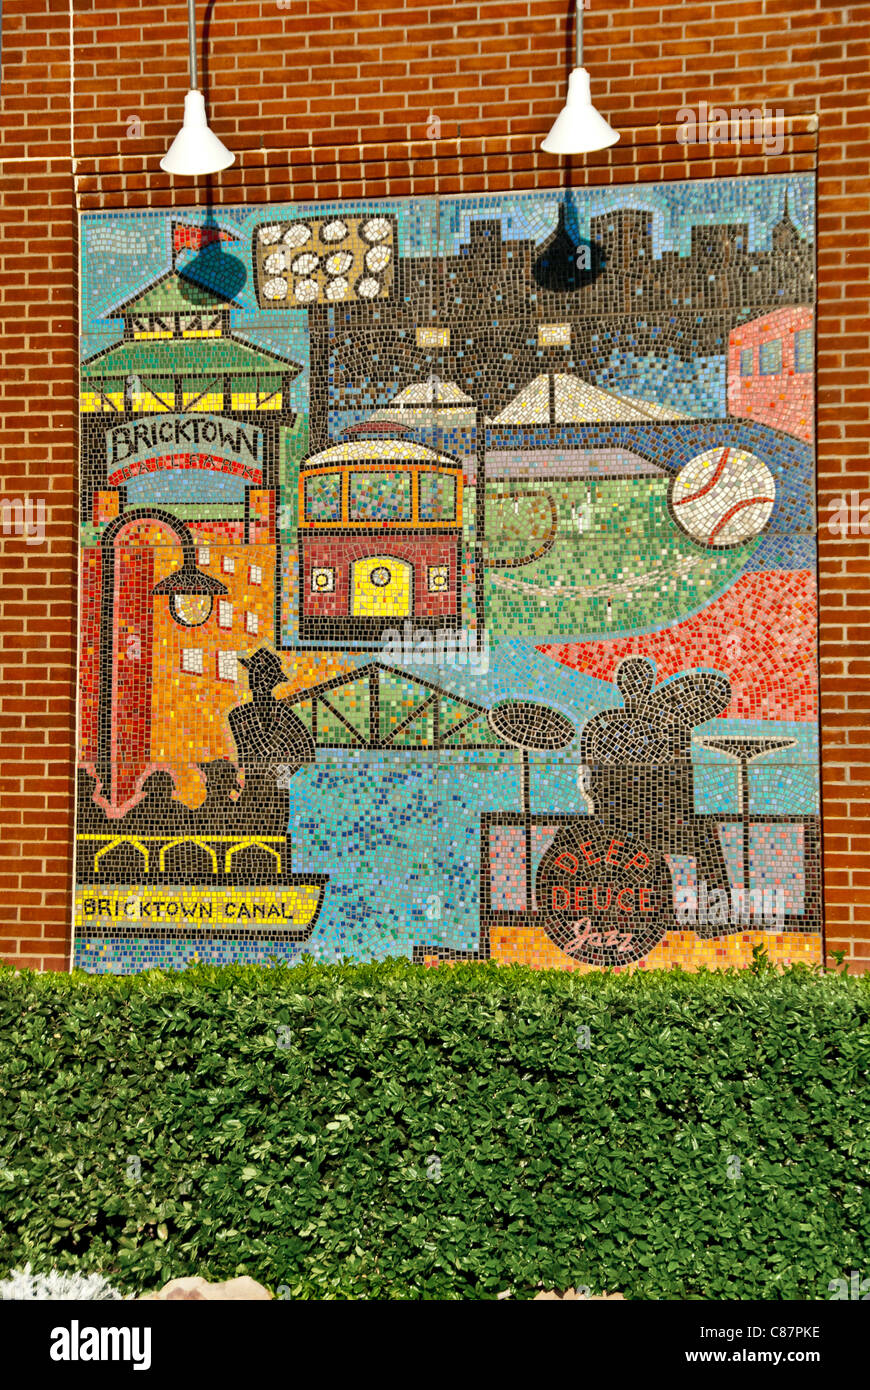 'History of Bricktown' mosaic murals by Susan Morrison, on facade of the AT&T Bricktown Ballpark, Oklahoma - Stock Image